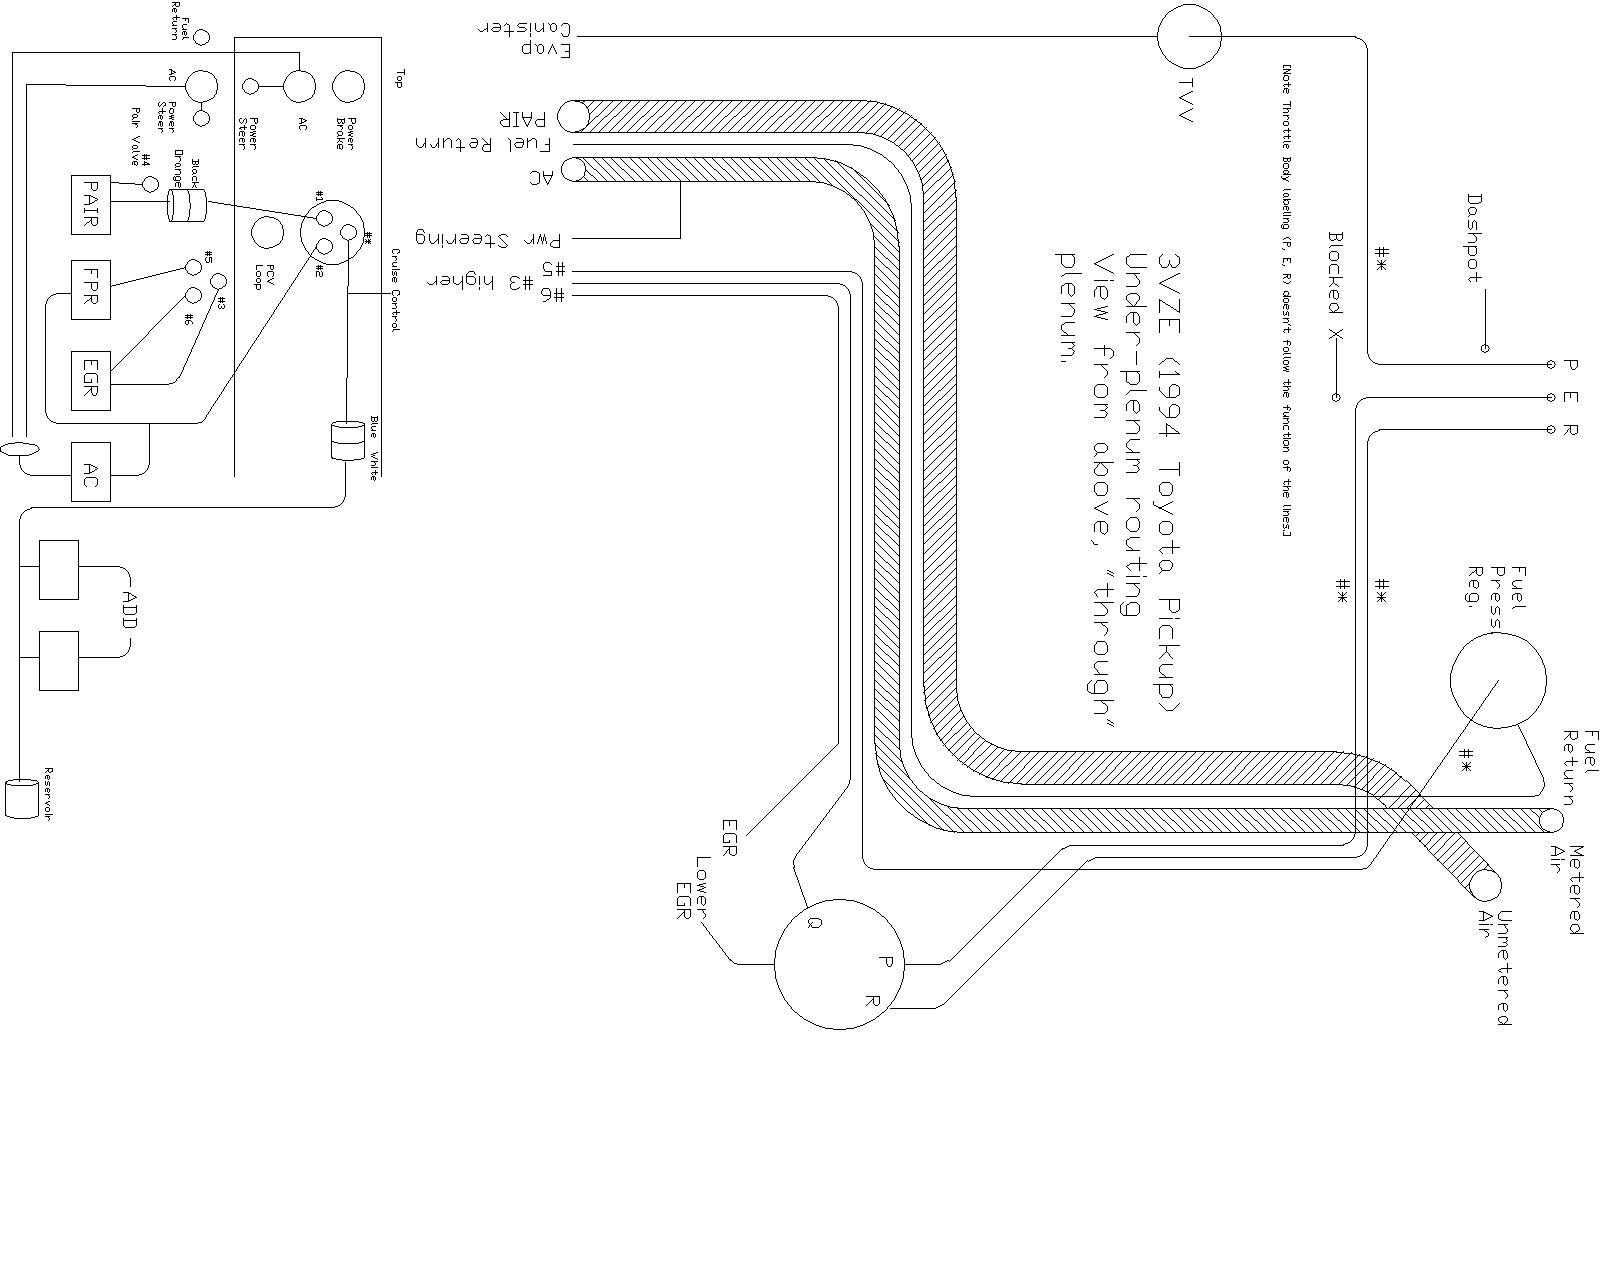 hight resolution of engine diagram toyota pickup engine free engine vacuum line on 92 3 0l 3vze